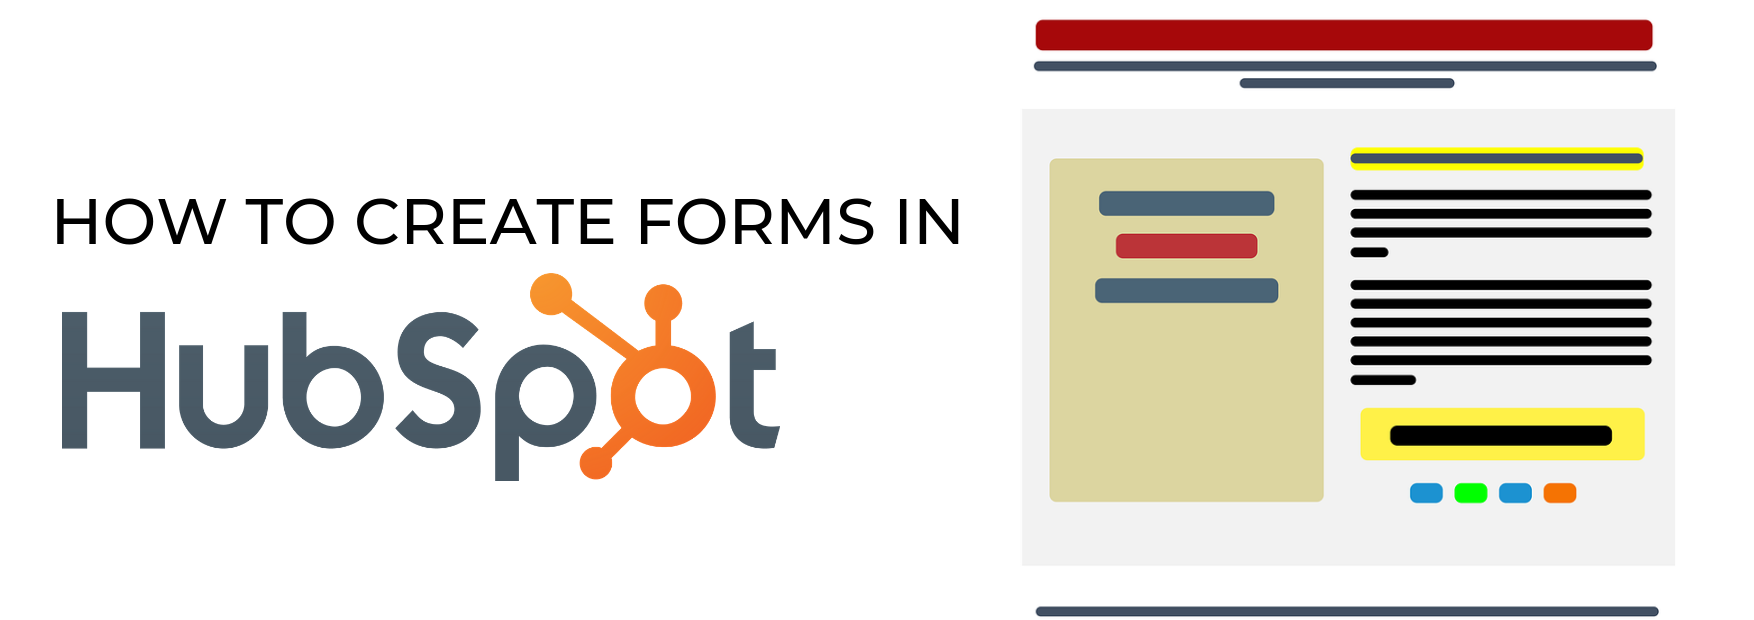 Creating Forms In HubSpot ? Here's How You Do It Right